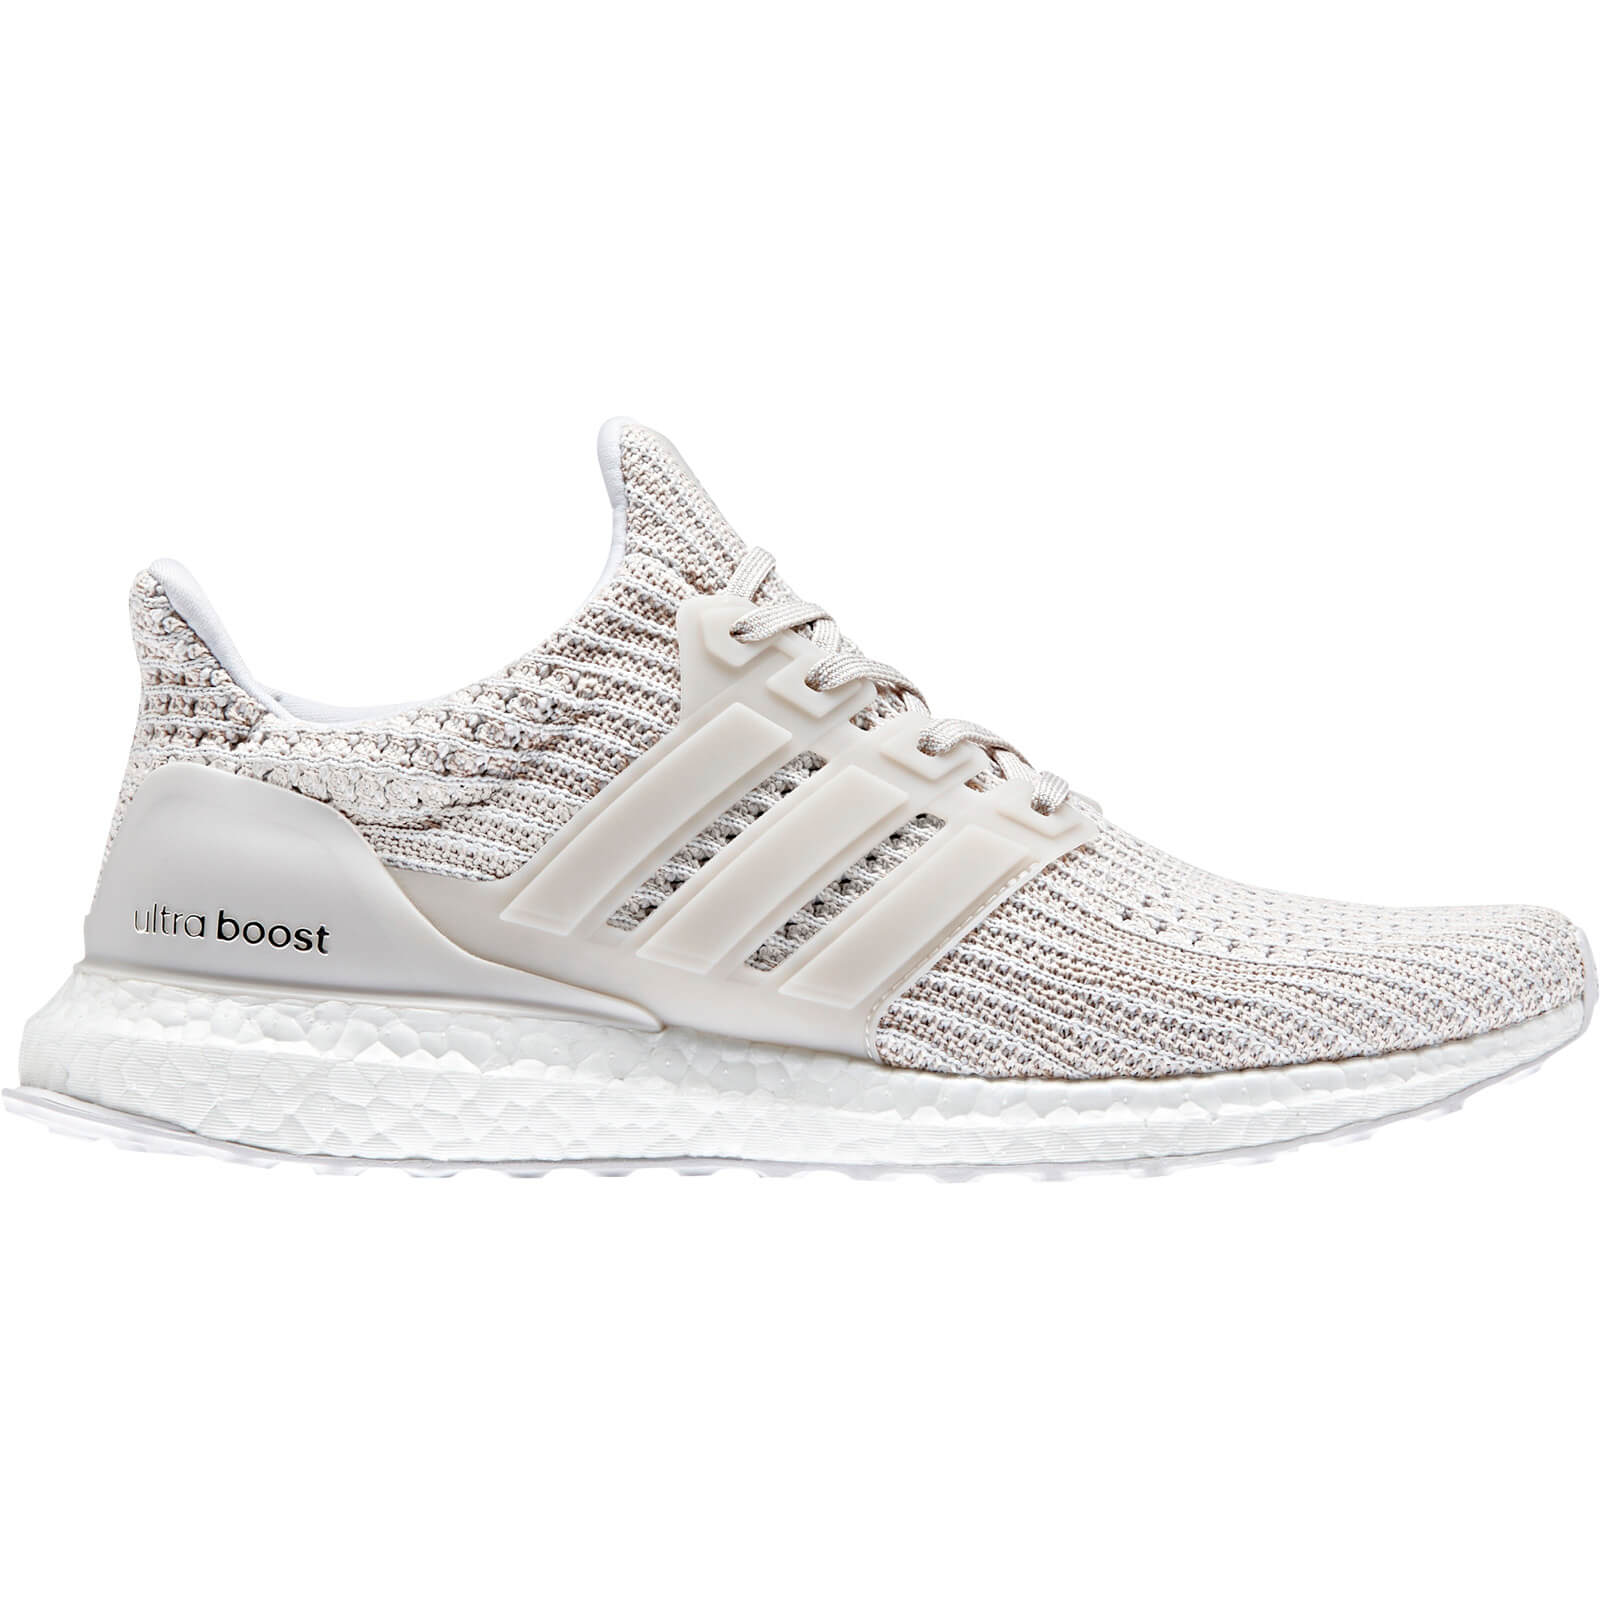 9c7b3dfdbc1 adidas Men s Ultraboost Running Shoes - Chalk Pearl White ...